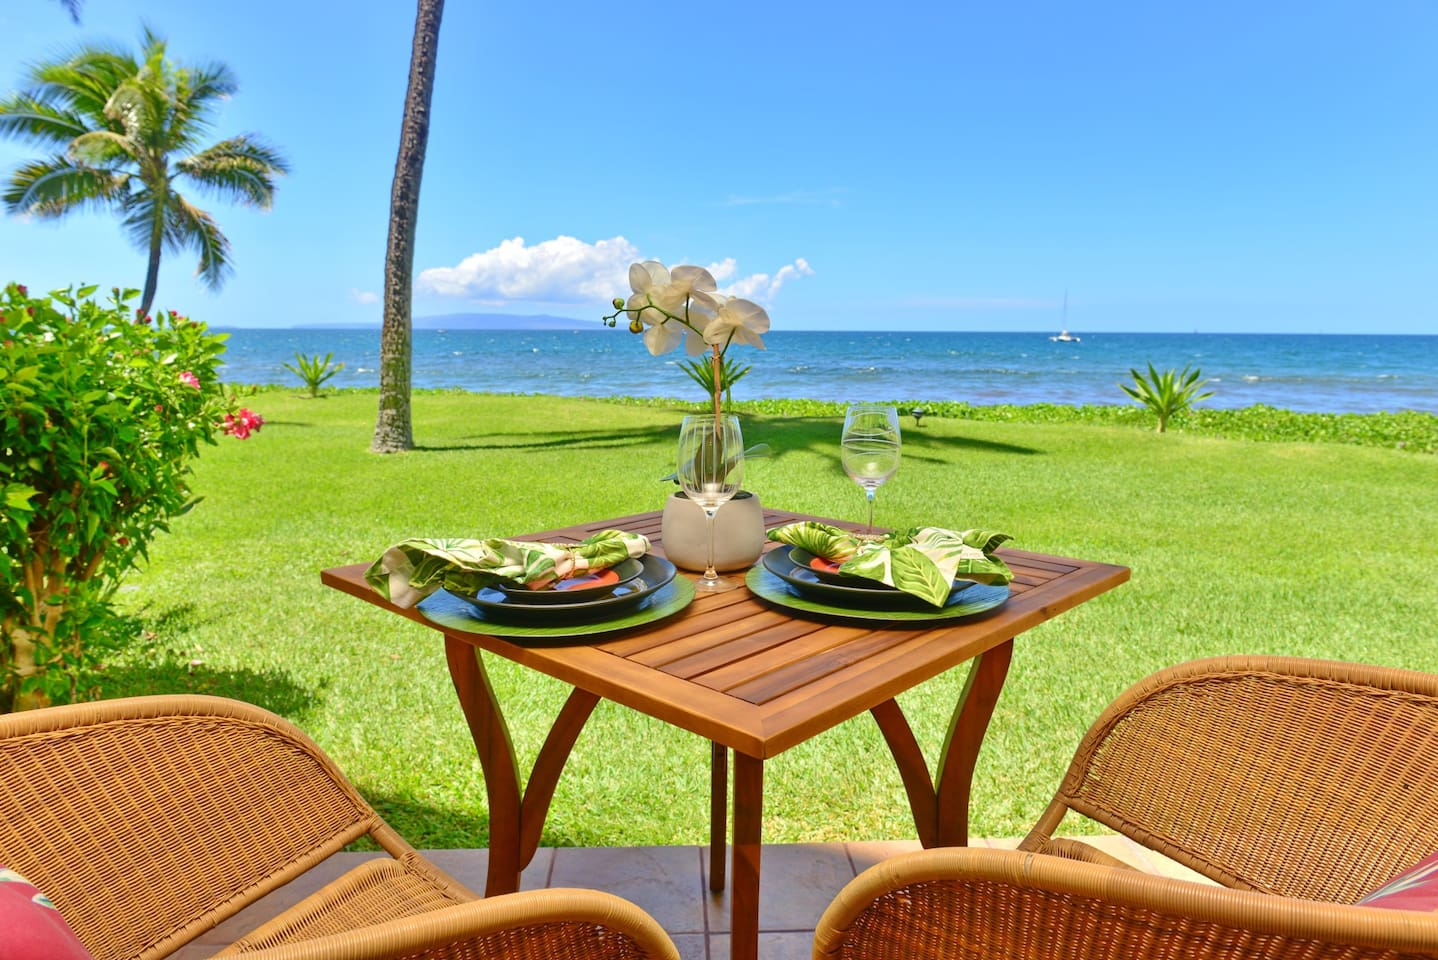 Dine with the sound of the waves at your doorstep!